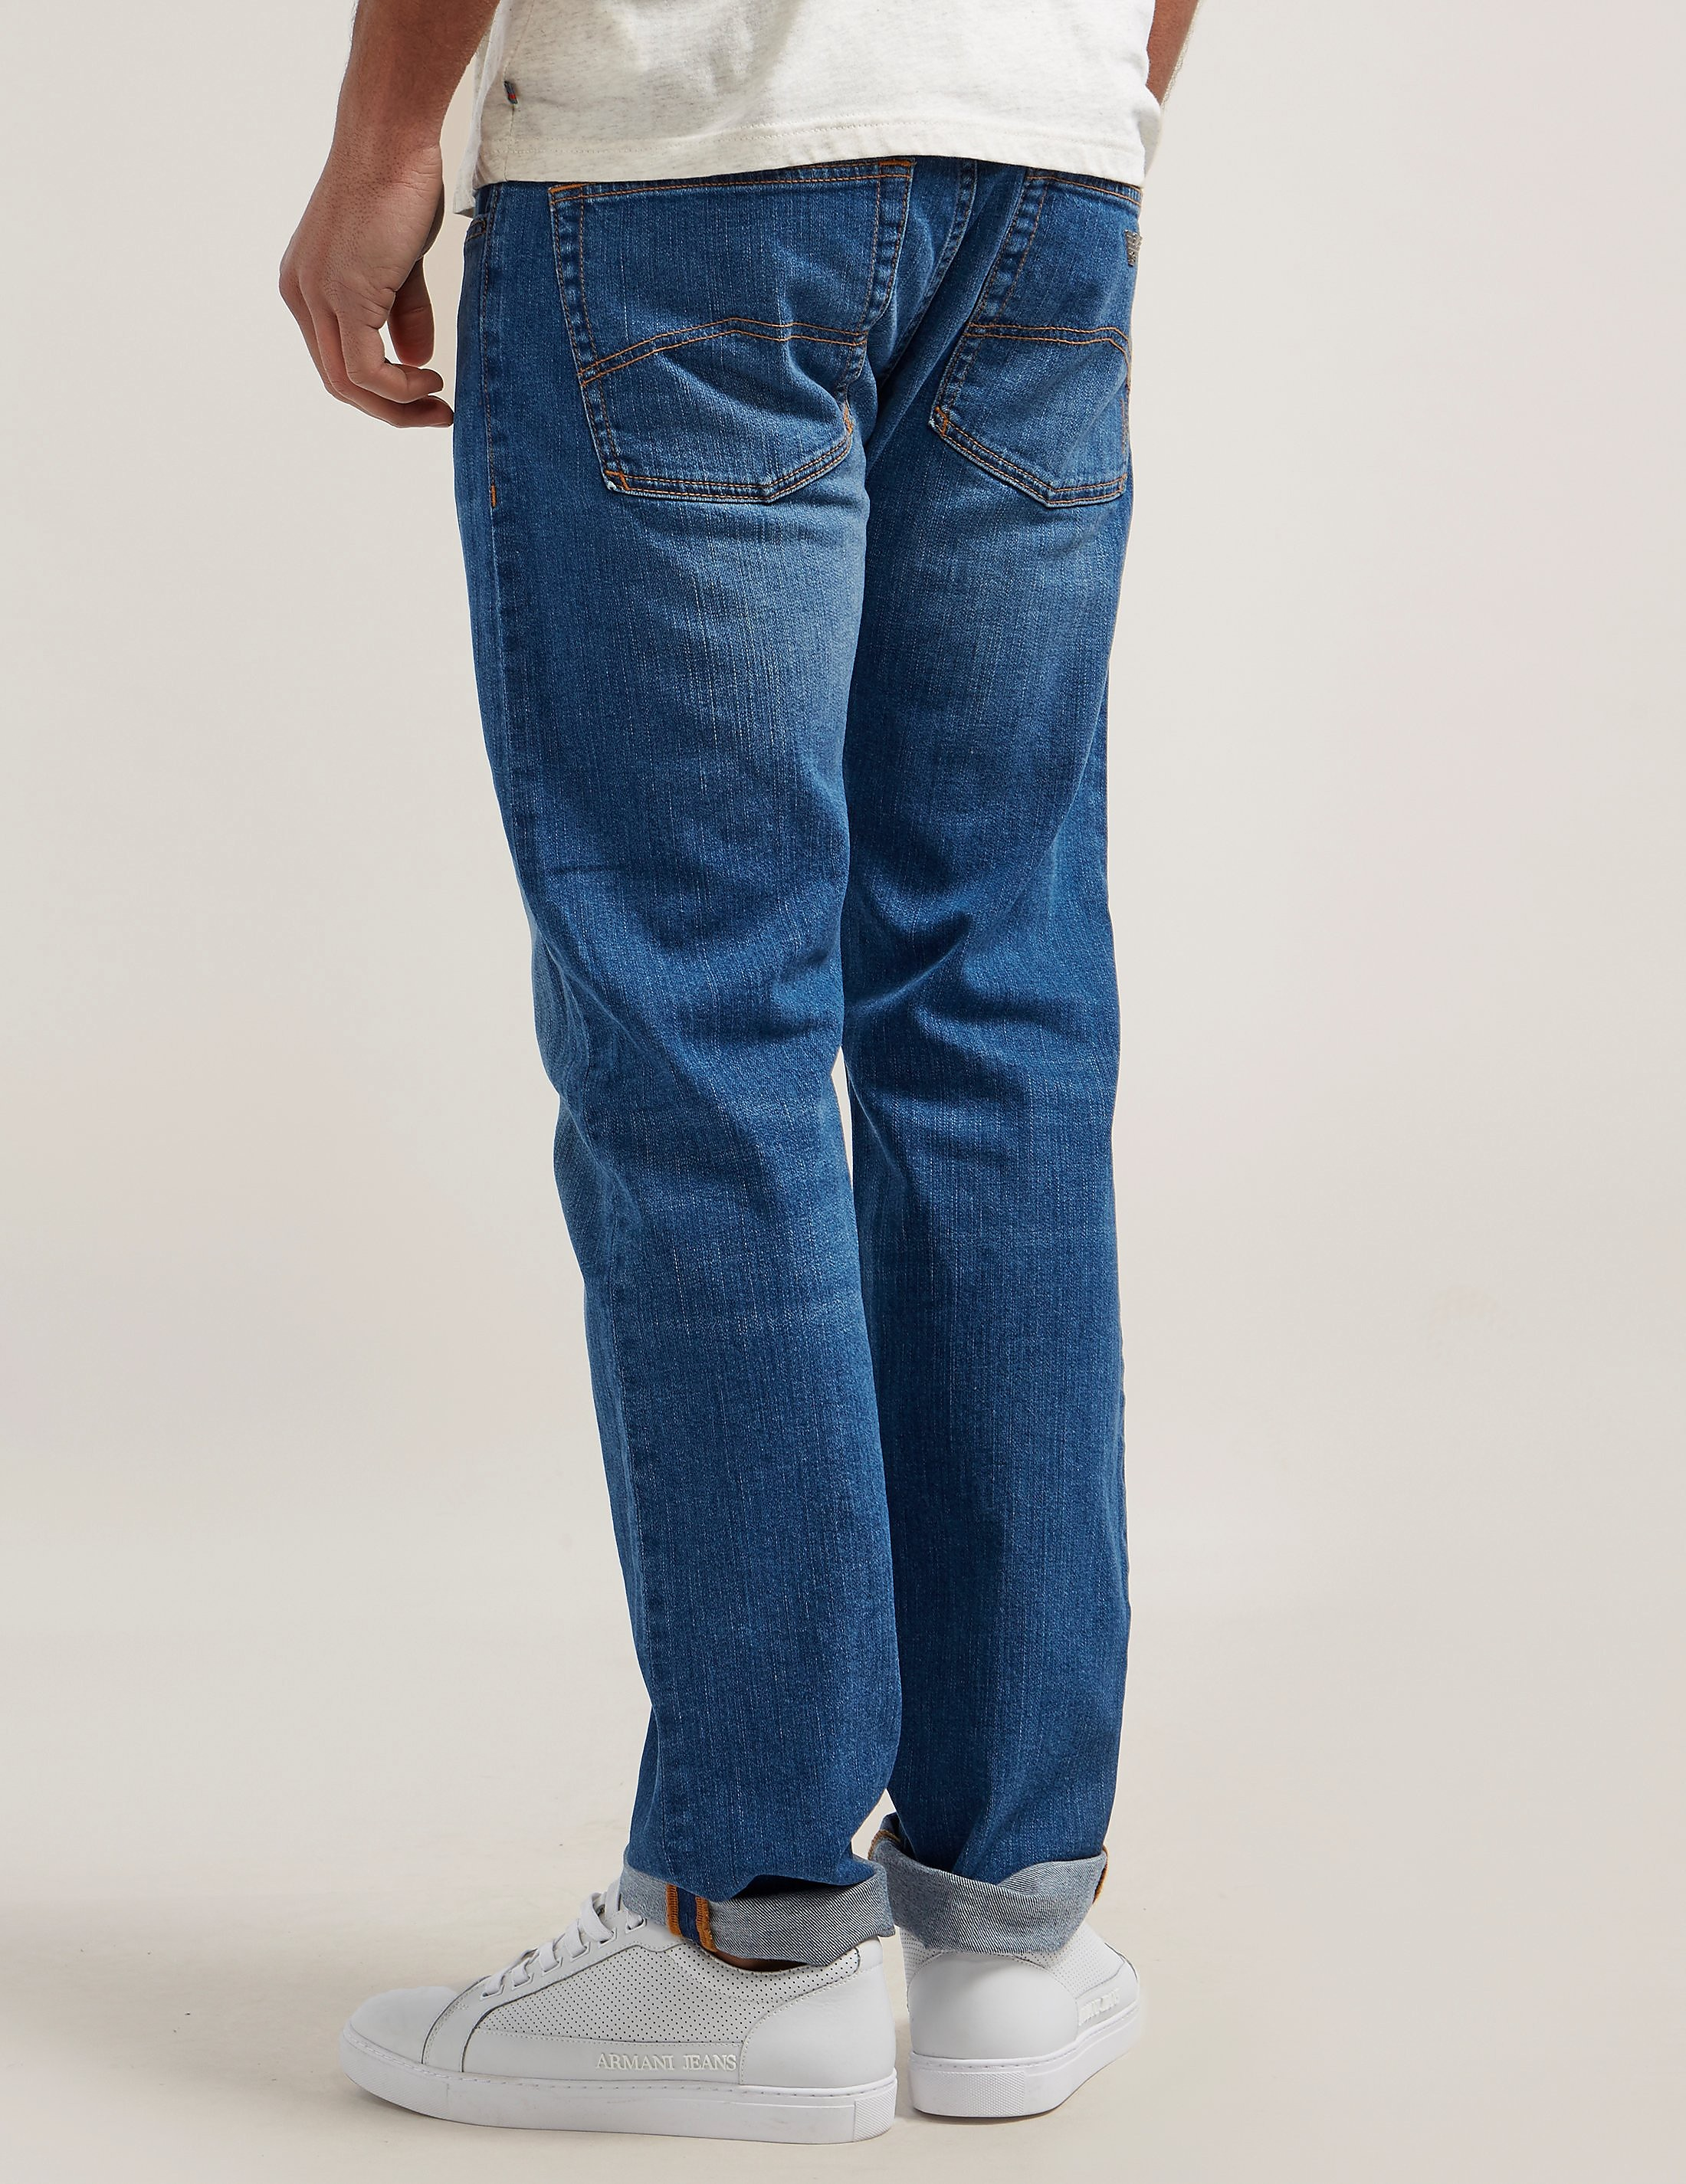 Armani Jeans J45 Regular Fit Jean